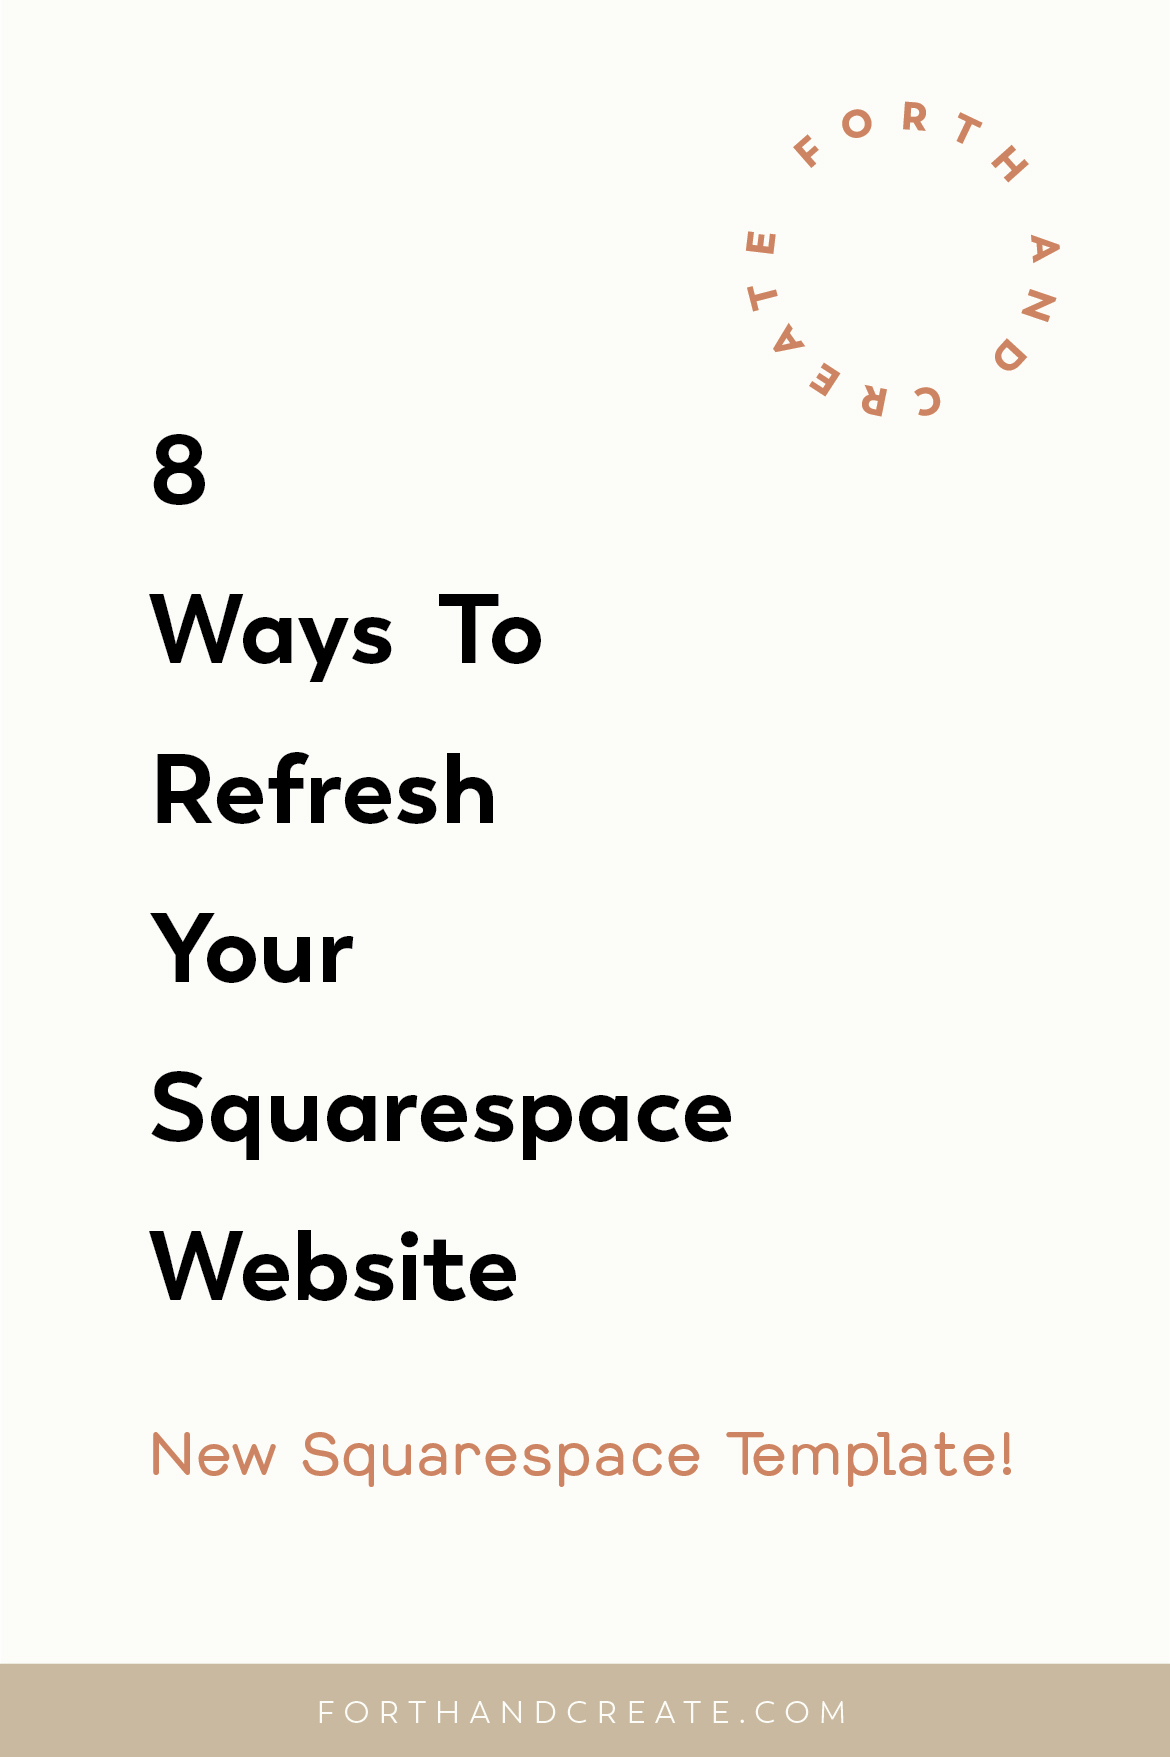 8 ways to refresh your Squarespace website. Easy tips to give your Squarespace template a fresh new look. #Squarespace #Squarespacetips #websitedesign #Squarespacedesigner